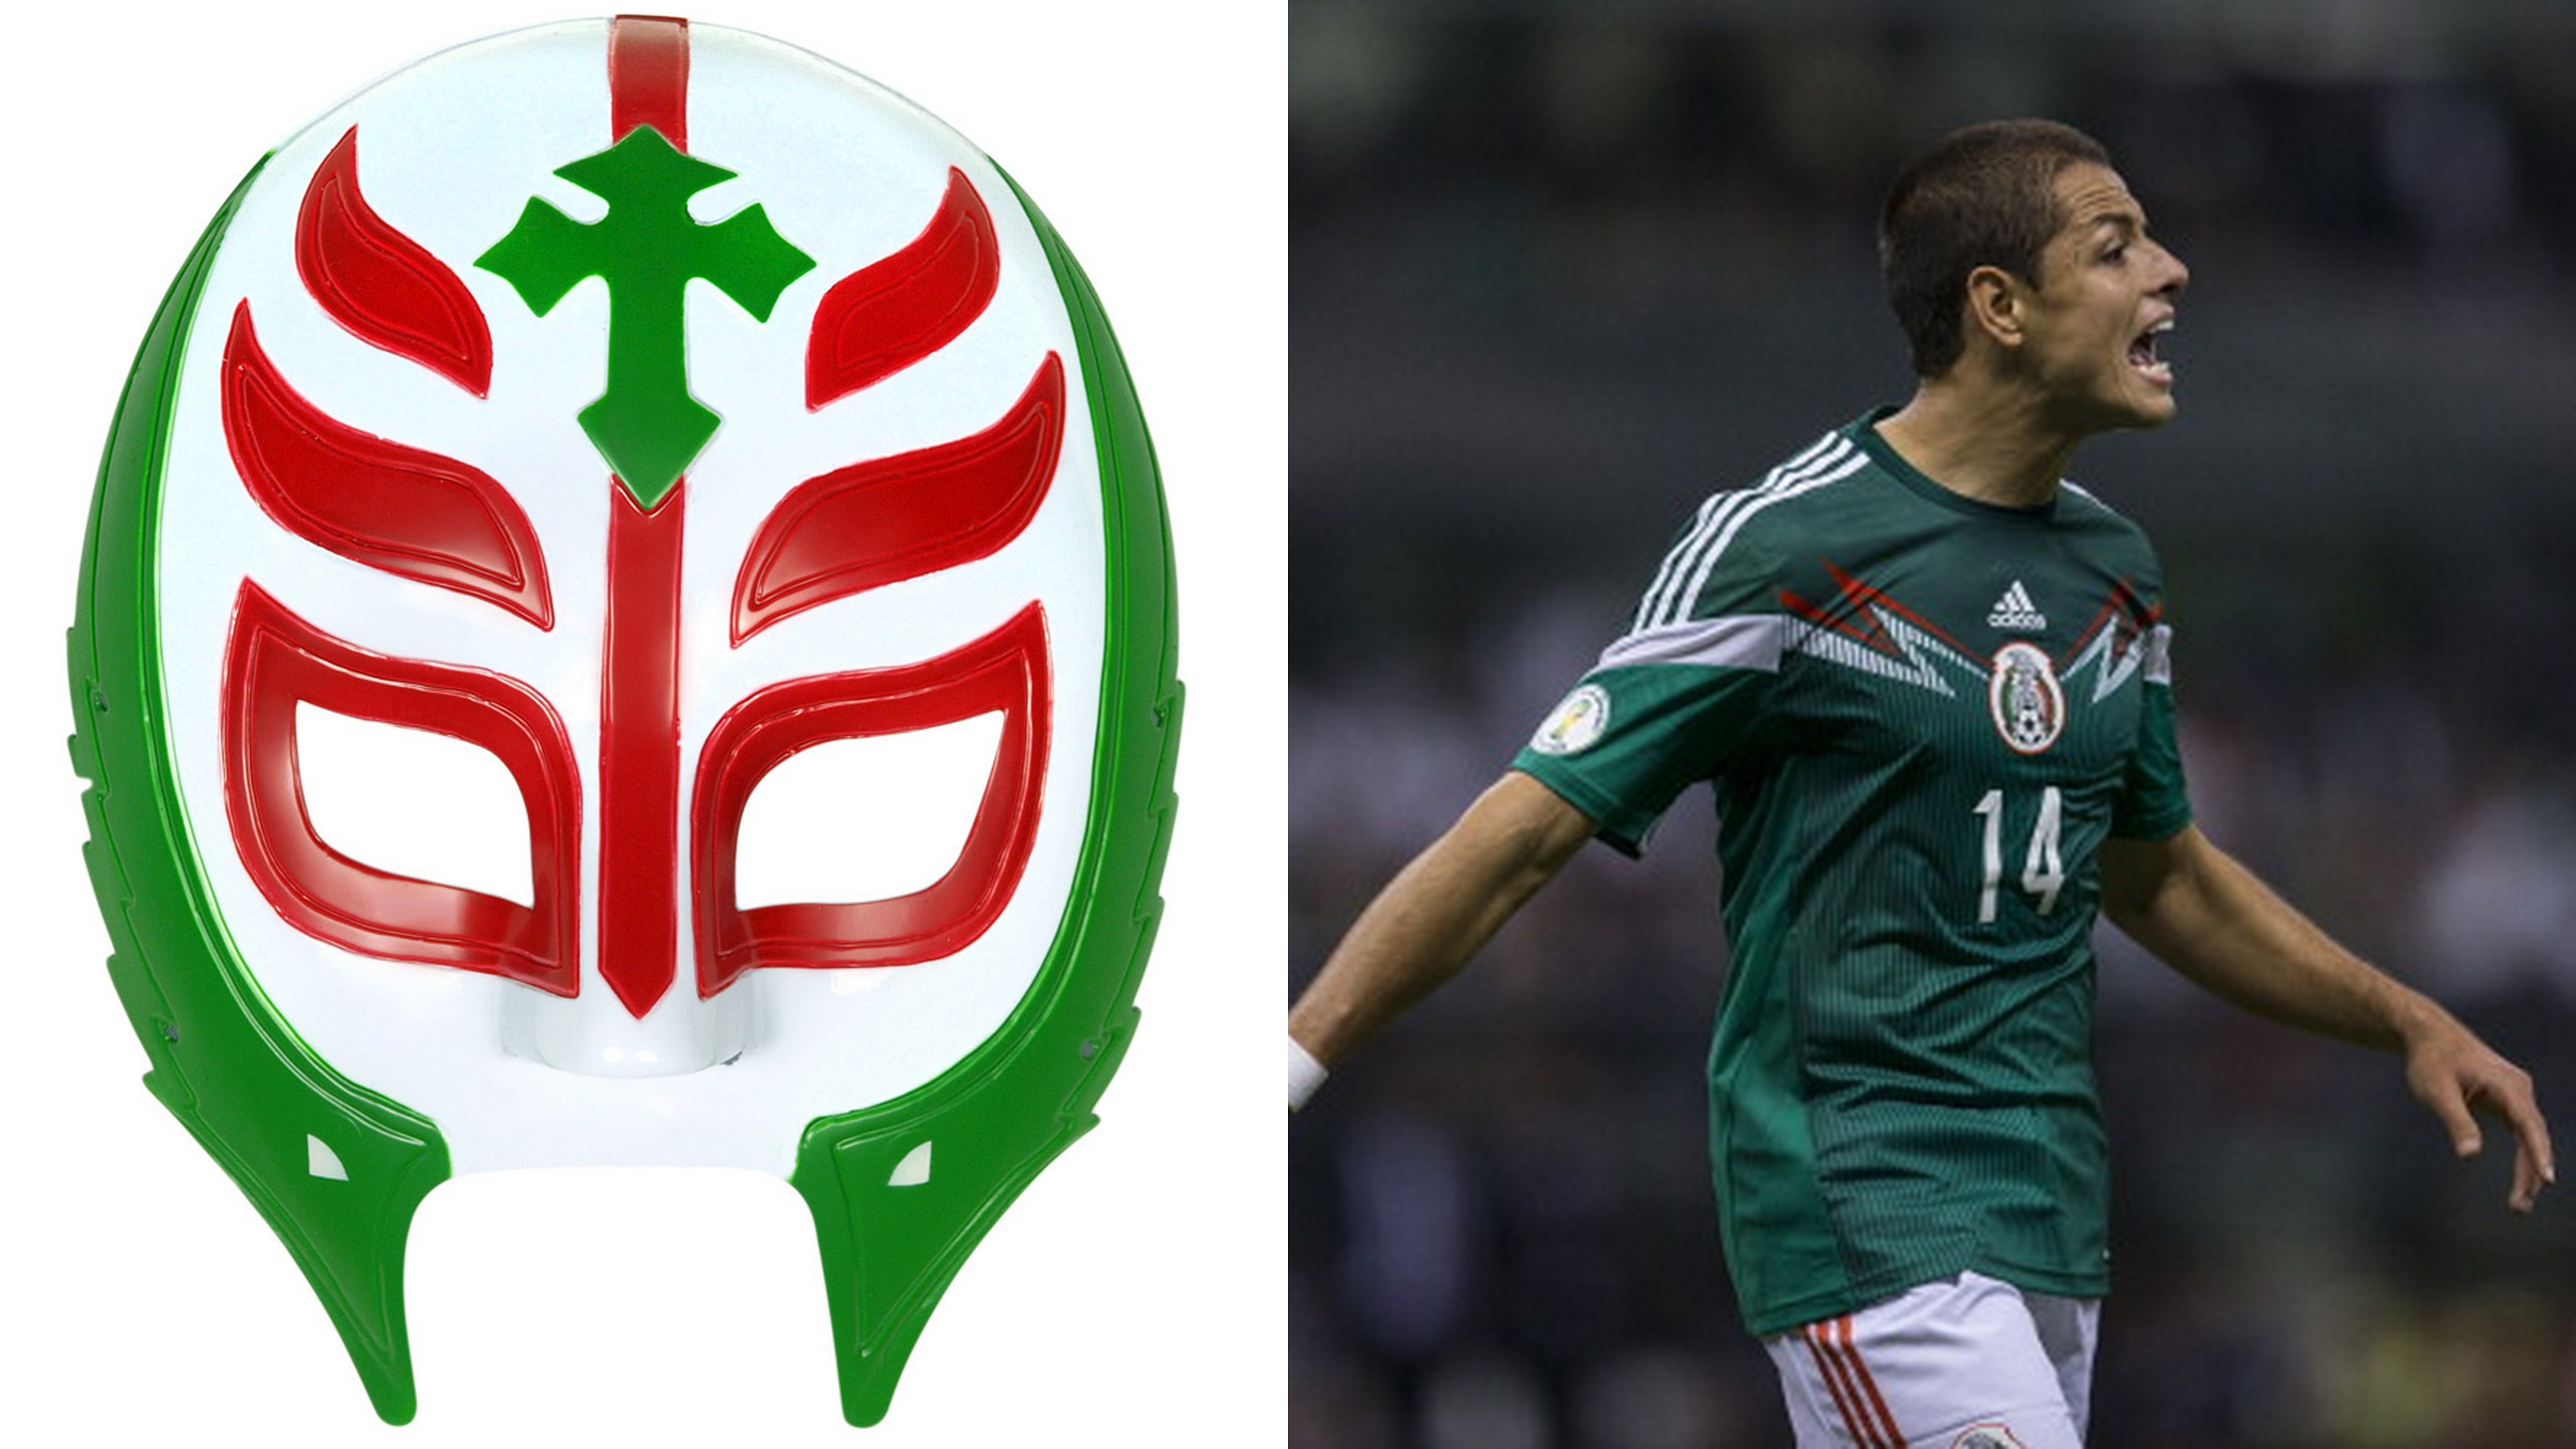 5926de09a Mexico Mysterio. You can see the various 2014 FIFA World Cup jerseys ...